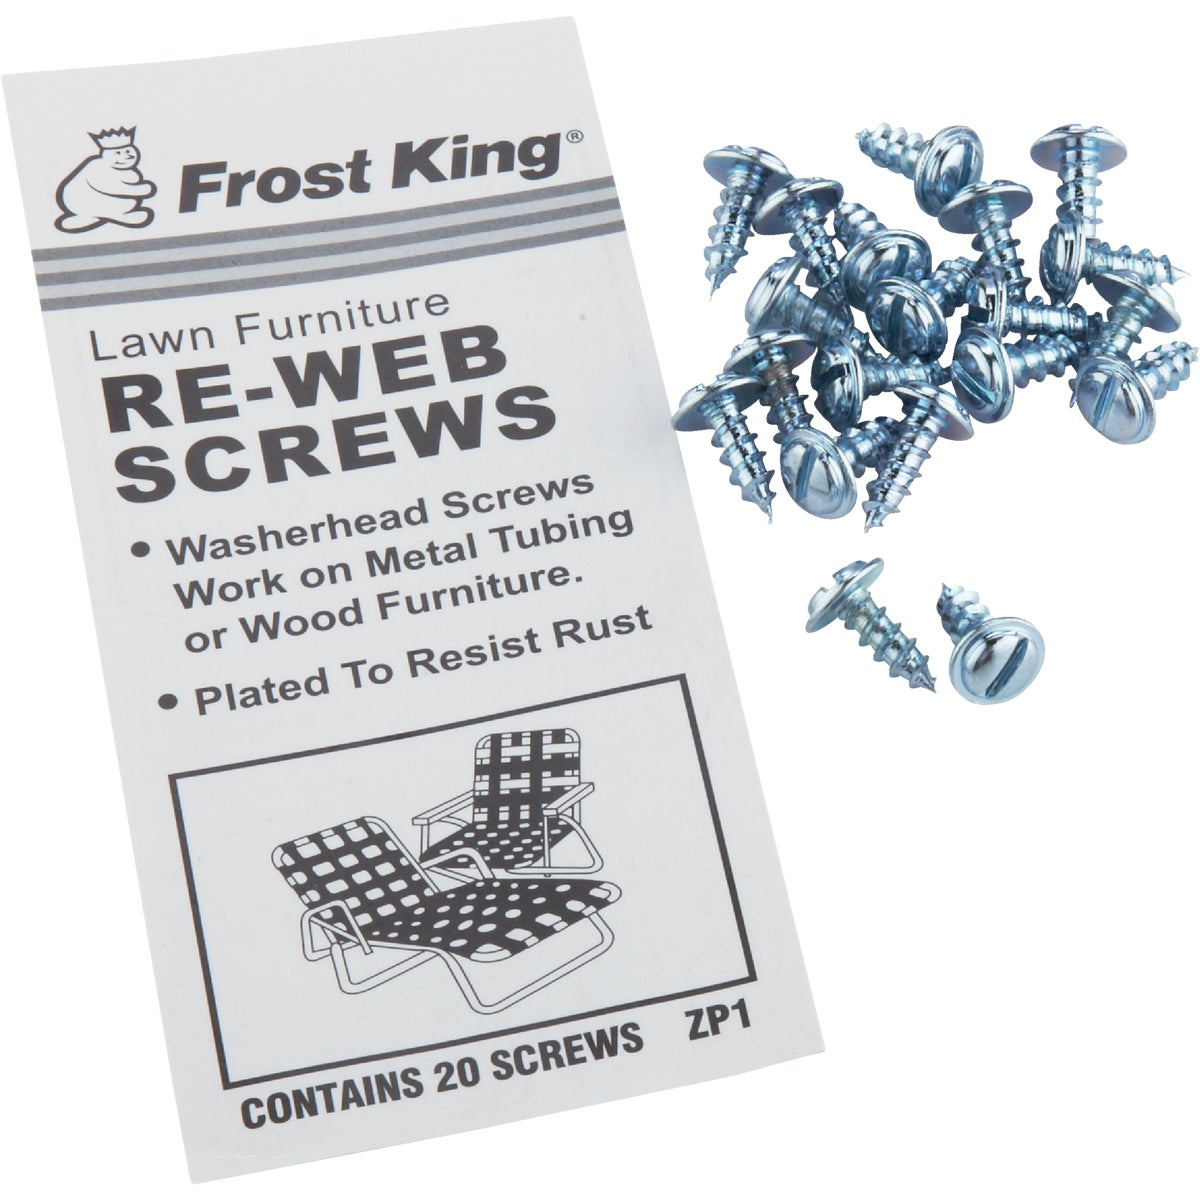 20PK REWEBBING SCREWS